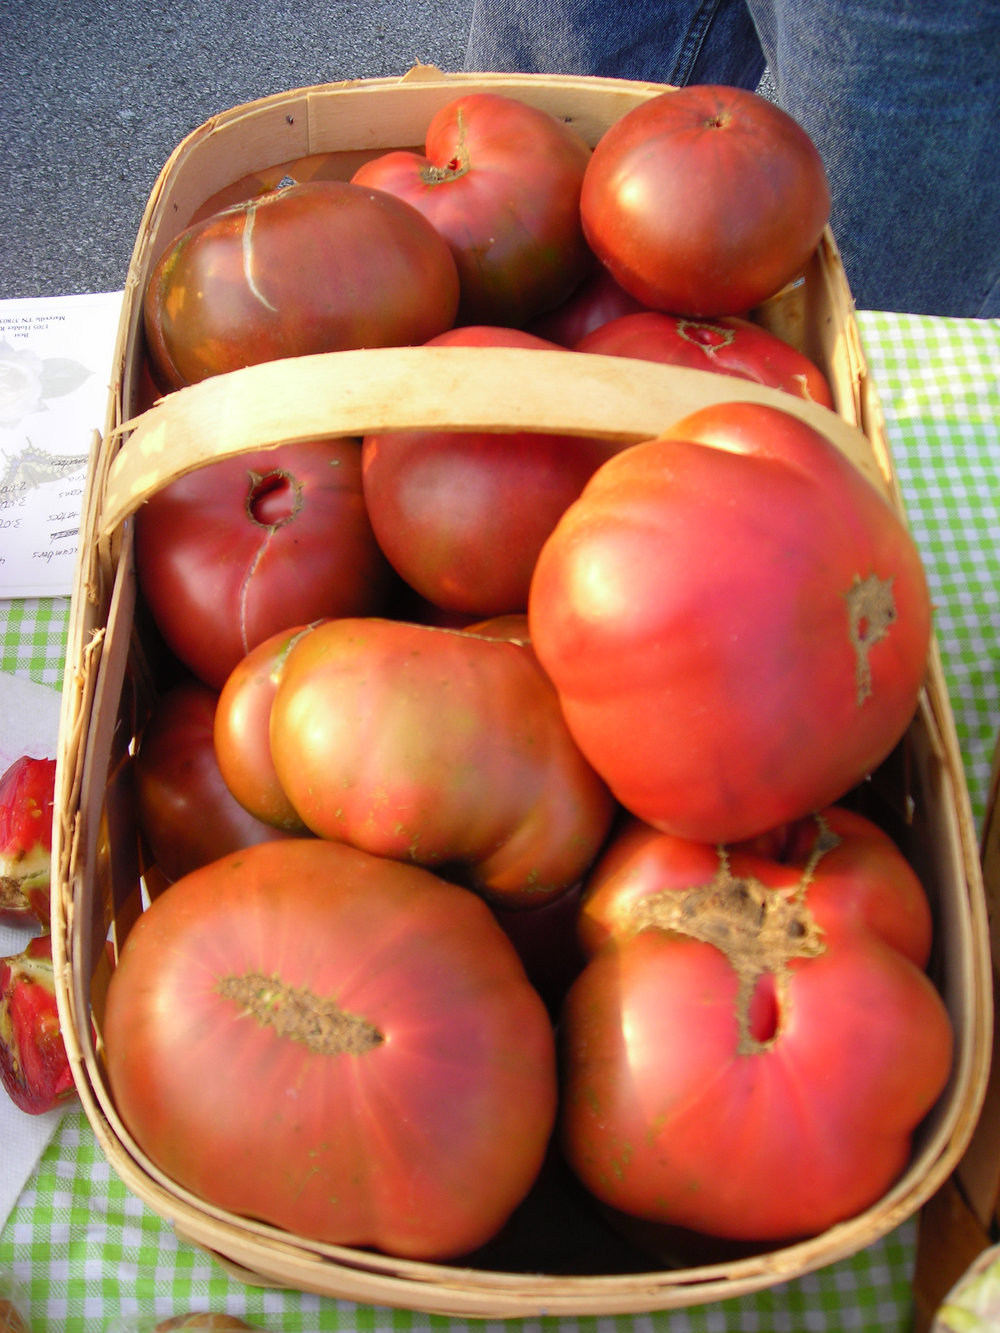 A gorgeous basket of home-grown, heirloom tomatoes grown by James Holder of Blount County, TN.